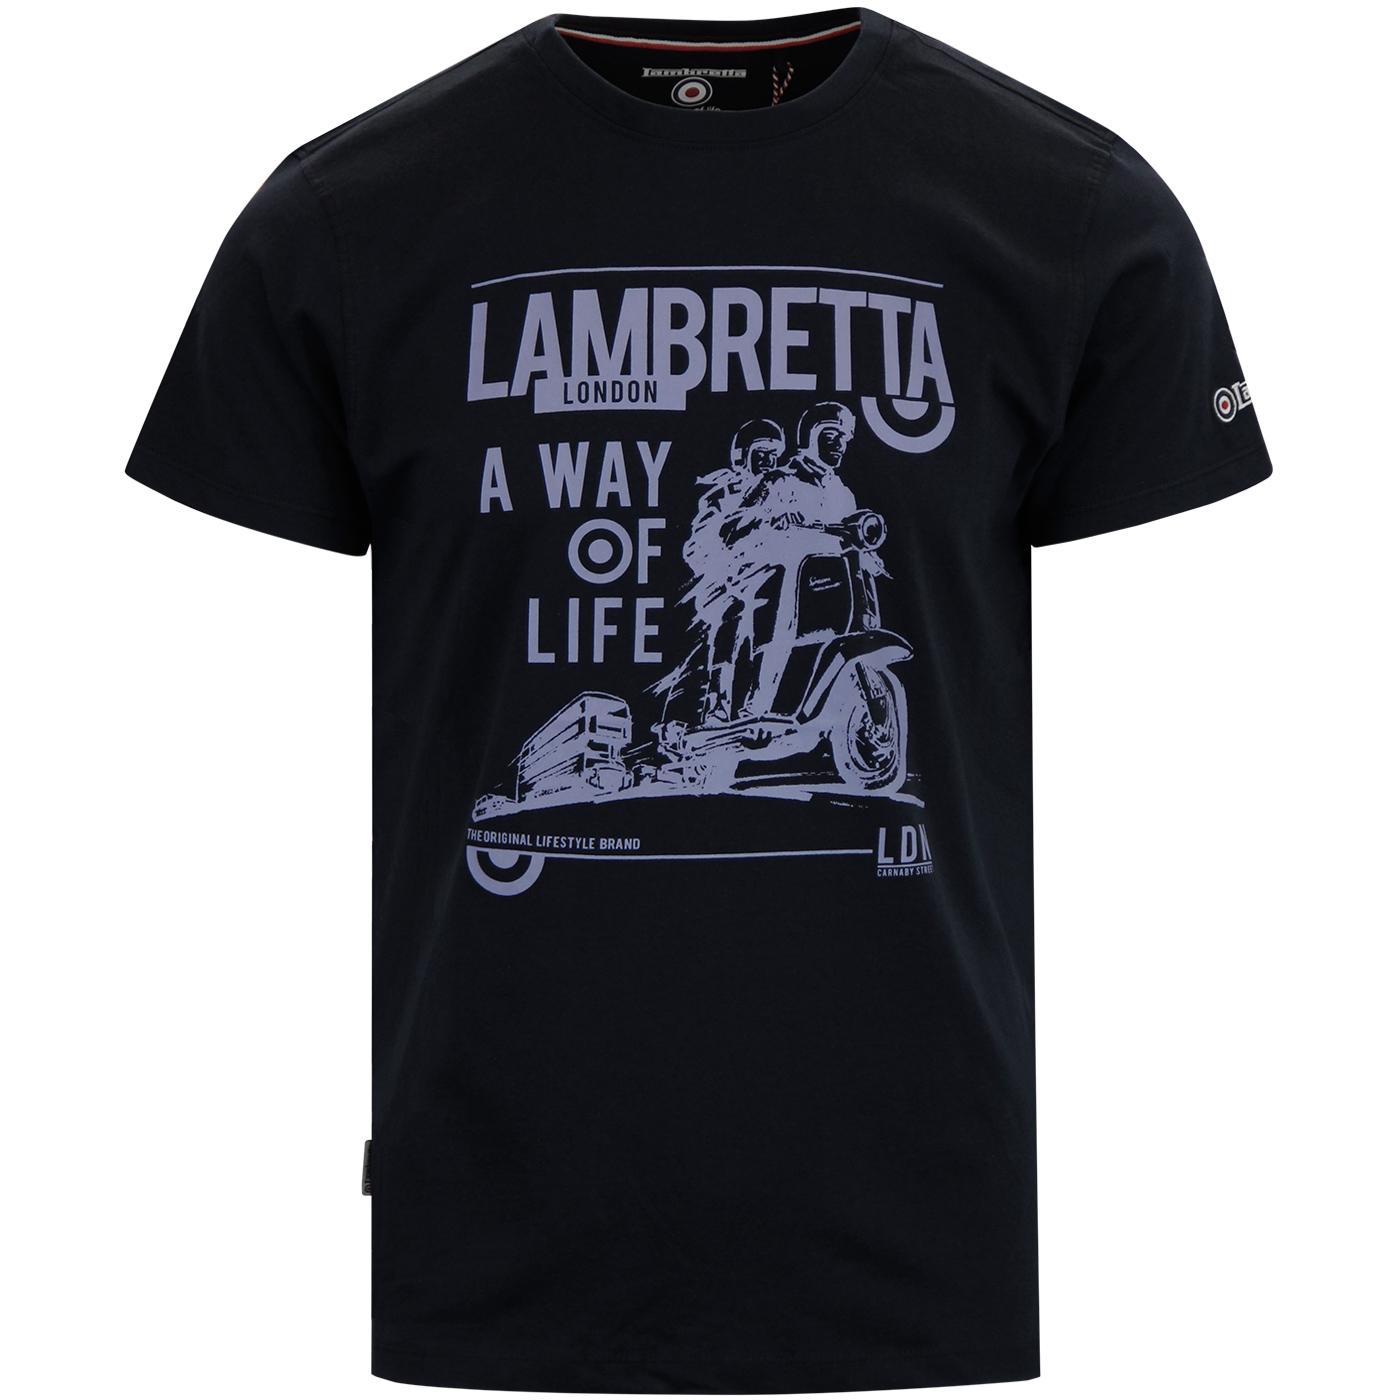 LAMBRETTA 'A Way Of Life' 60's Mod Scooter T-Shirt